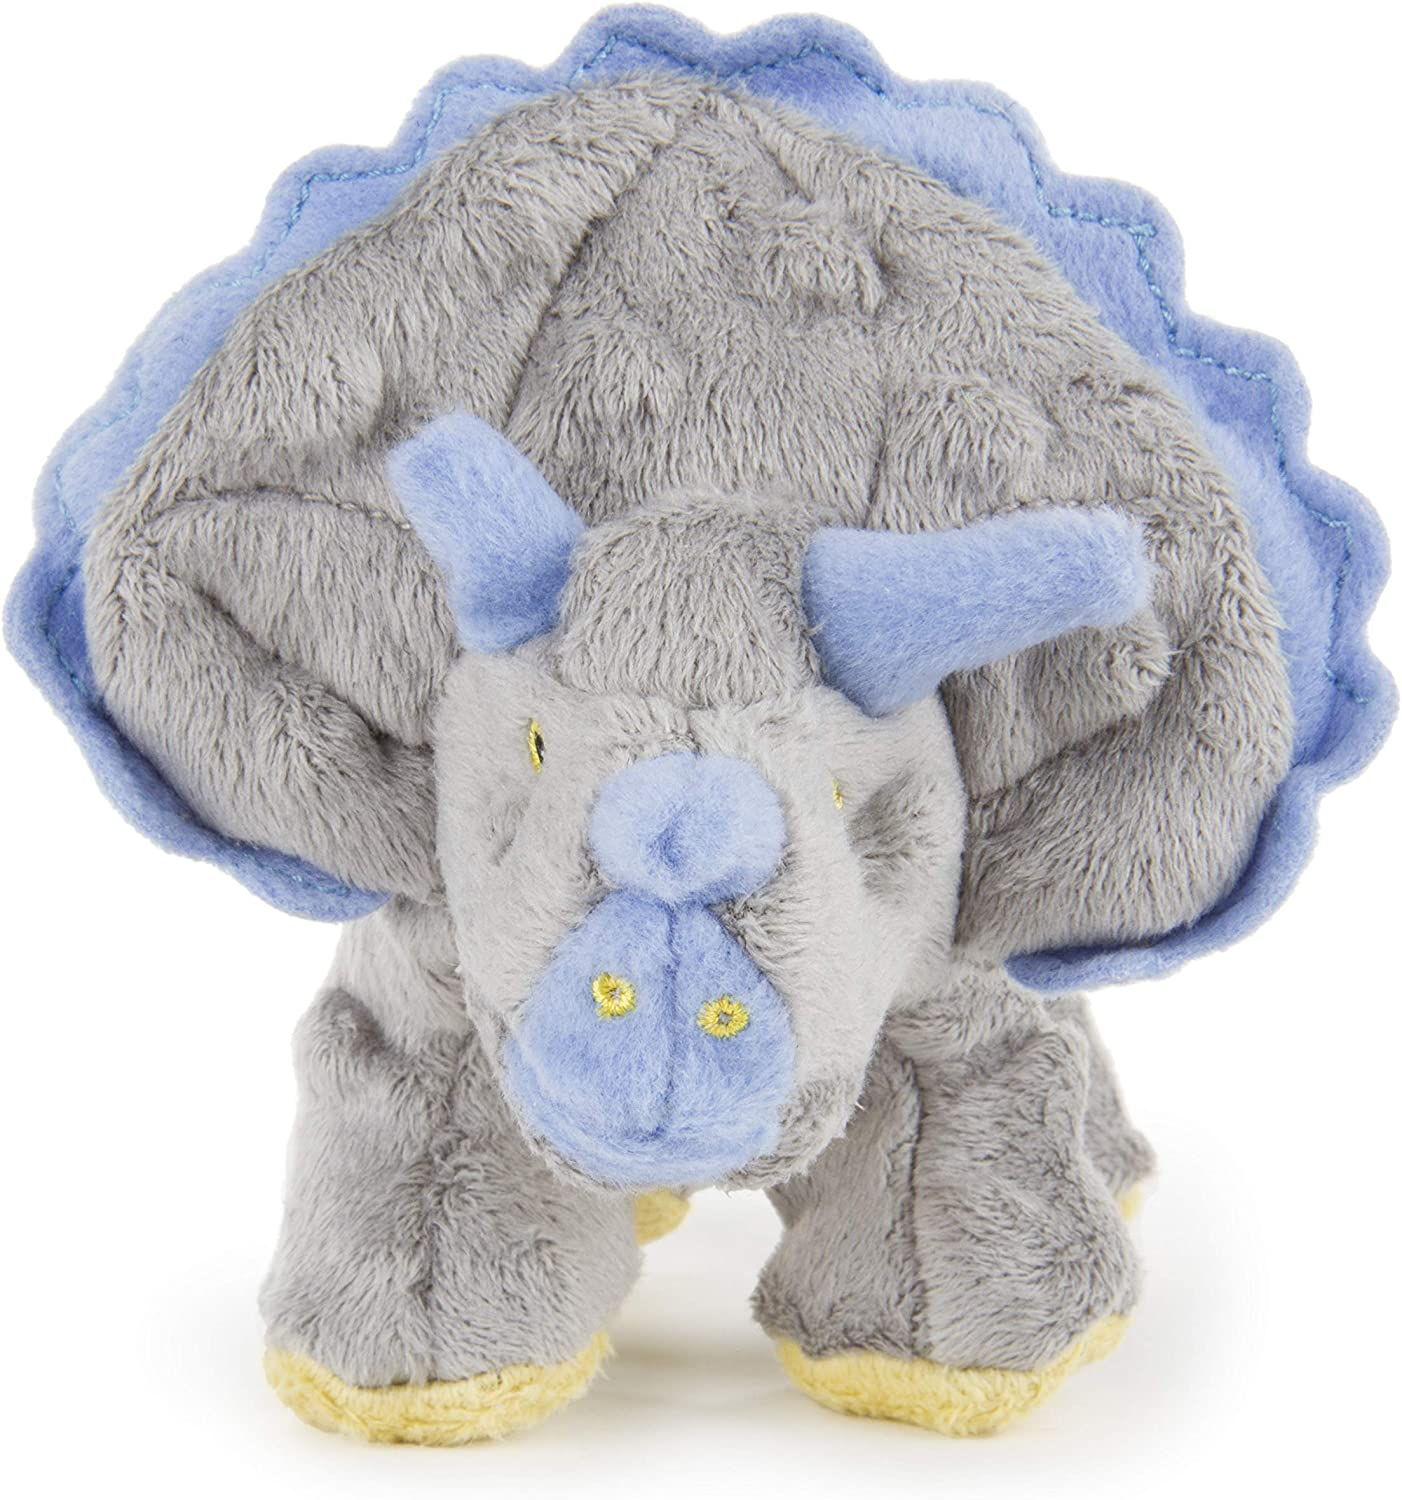 Pet Supplies : Pet Chew Toys : goDog Dinos Triceratops With Chew Guard Technology Tough Plush Dog Toy, Grey, Small :